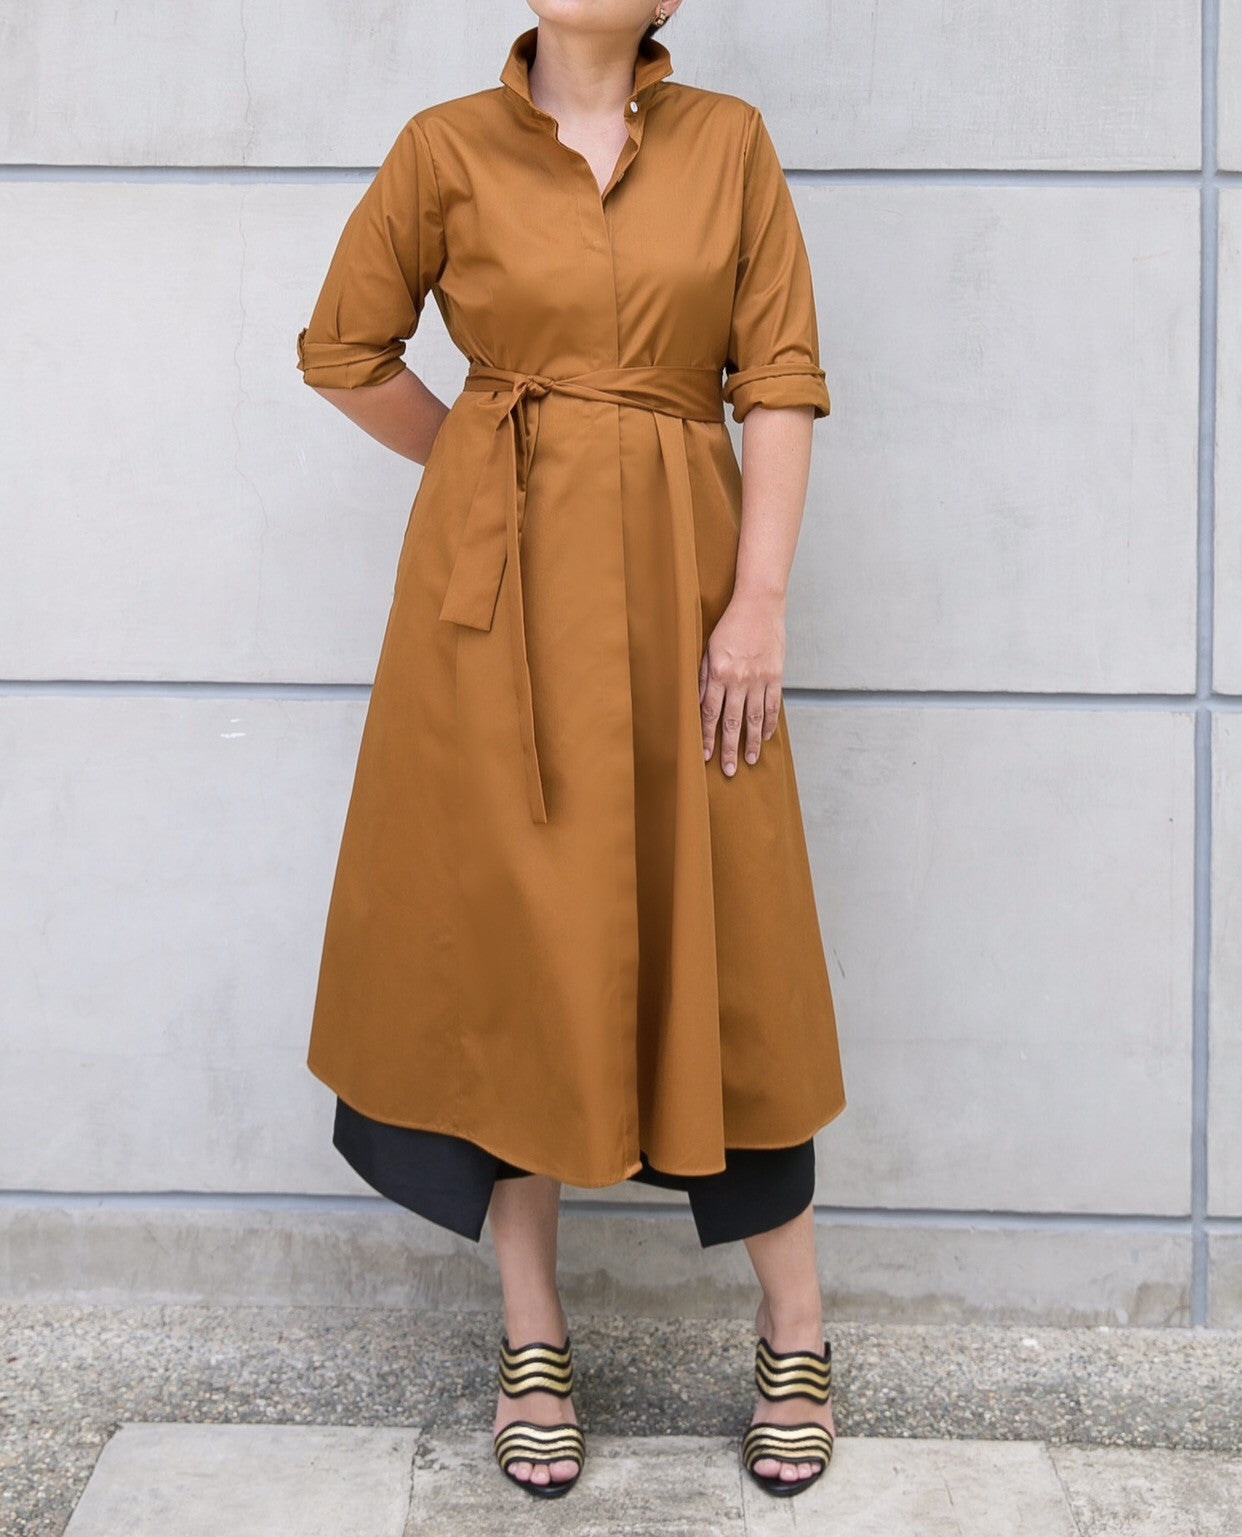 Ramona Shirt Dress